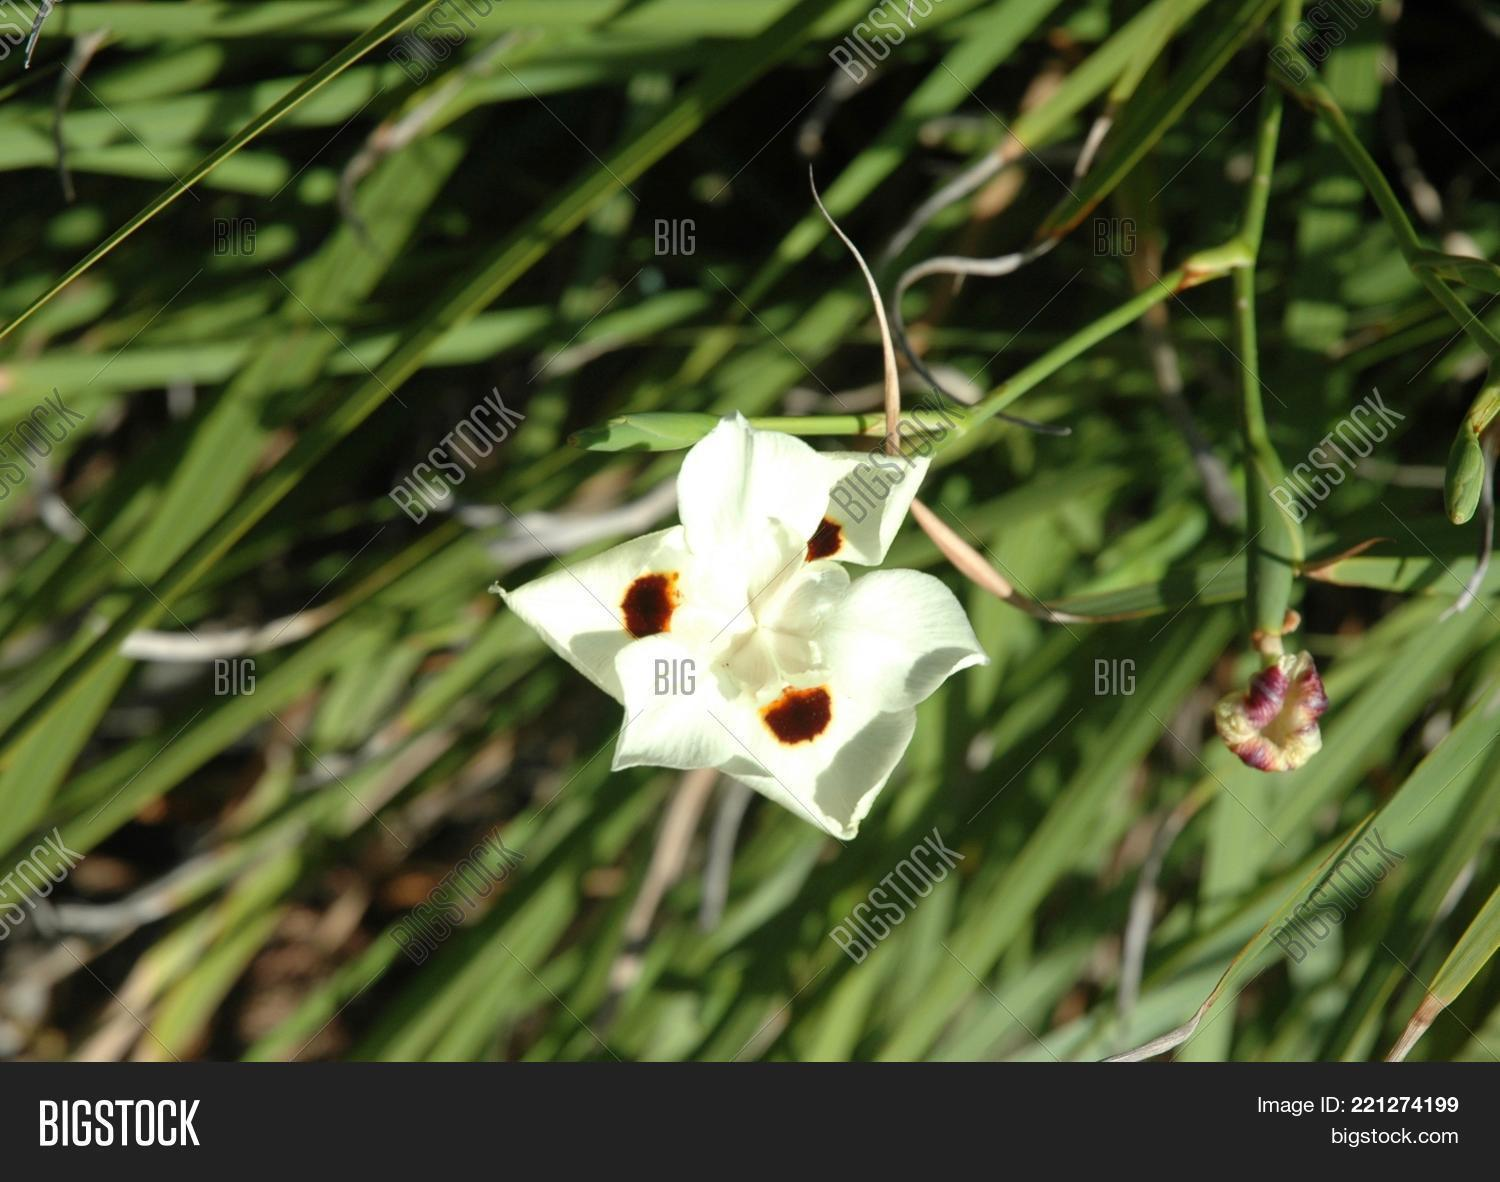 Close white flower image photo free trial bigstock a close up of a white flower the petals are pointed the flower mightylinksfo